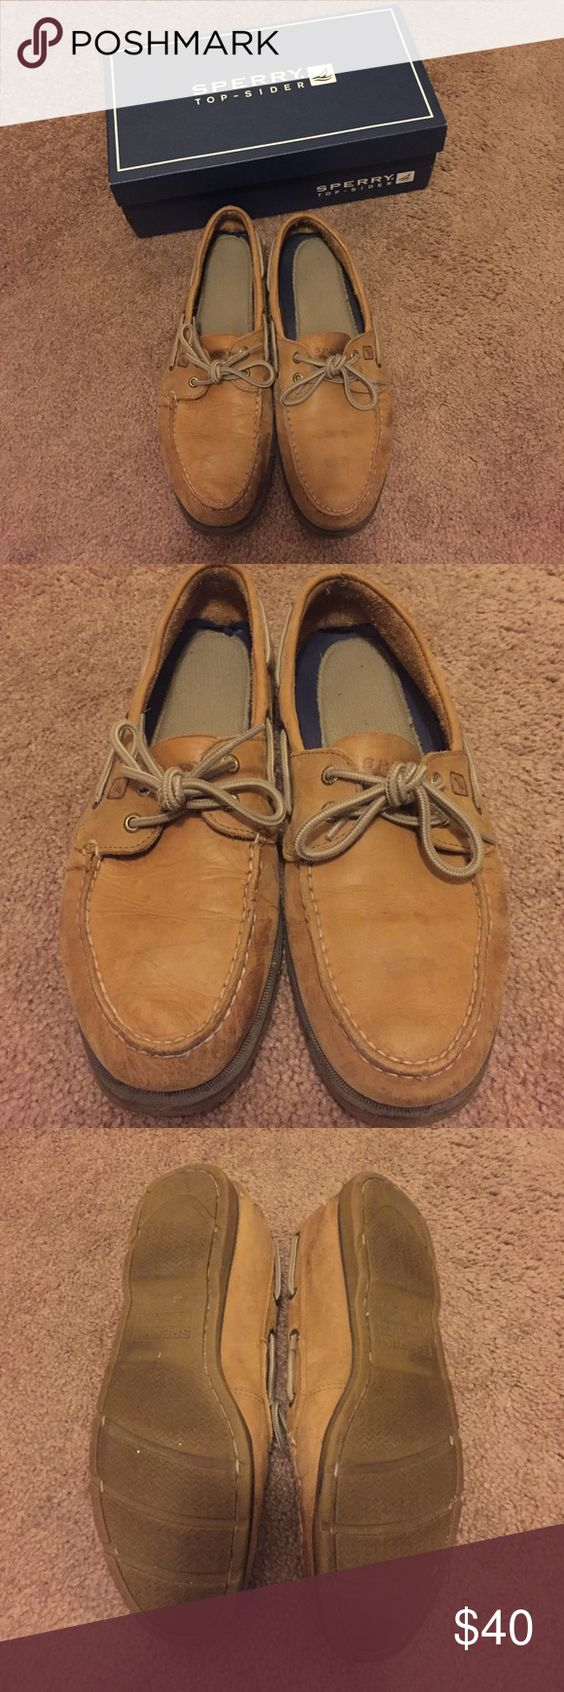 Men's Sperrys Brown men's sperrys. Slightly worn. Comes with the box. Leave me an offer! ☺️ Sperry Top-Sider Shoes Flats & Loafers